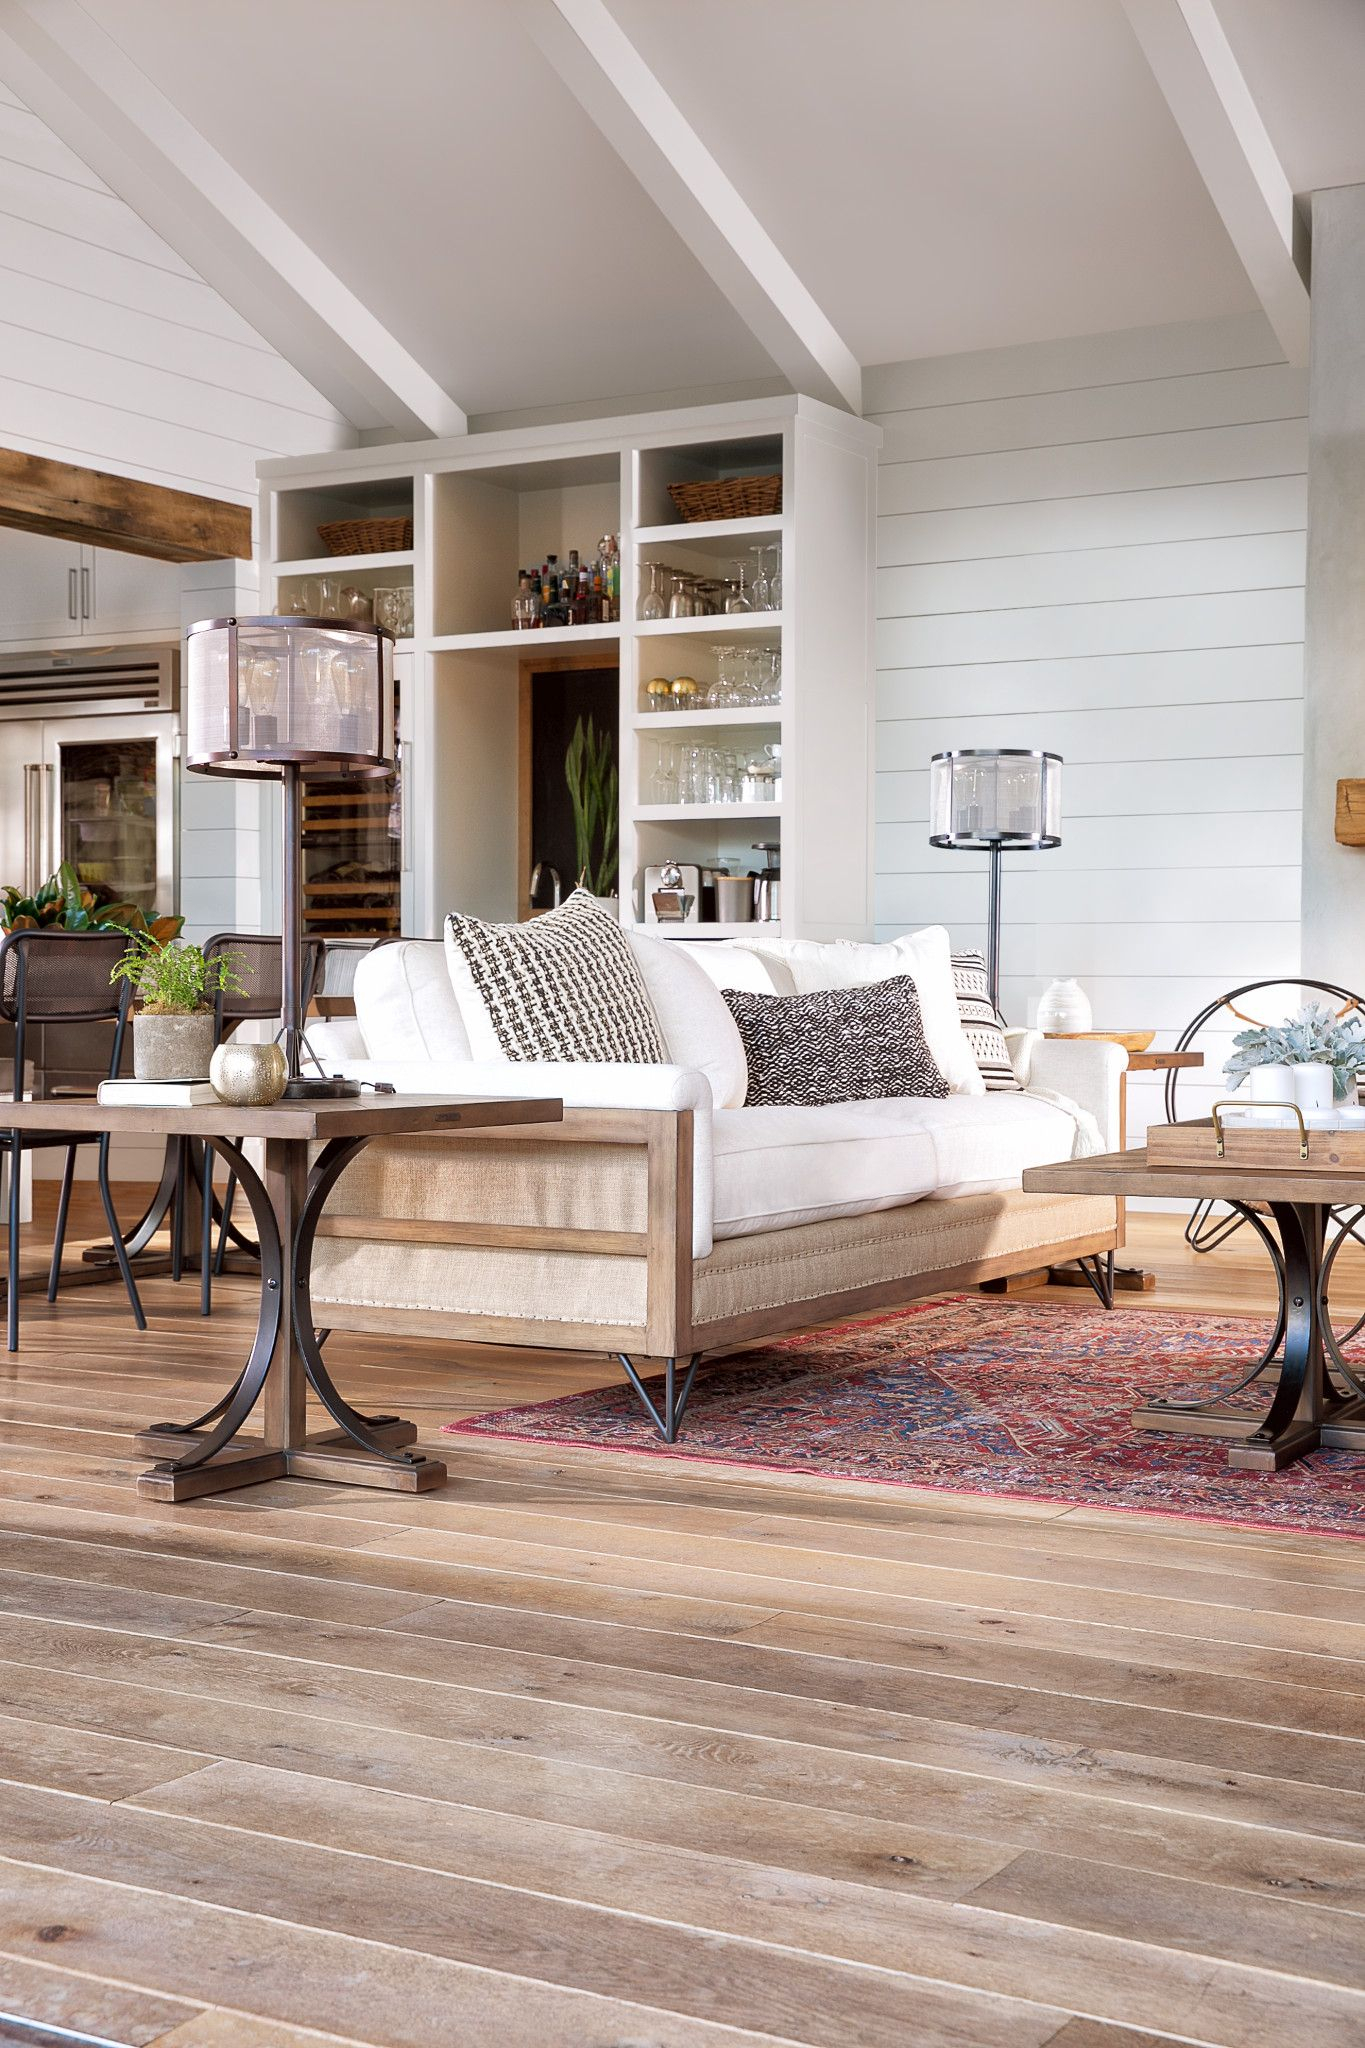 Magnolia Home Paradigm Loveseatjoanna Gaines In 2018 | Magnolia For Magnolia Home Paradigm Sofa Chairs By Joanna Gaines (View 6 of 25)